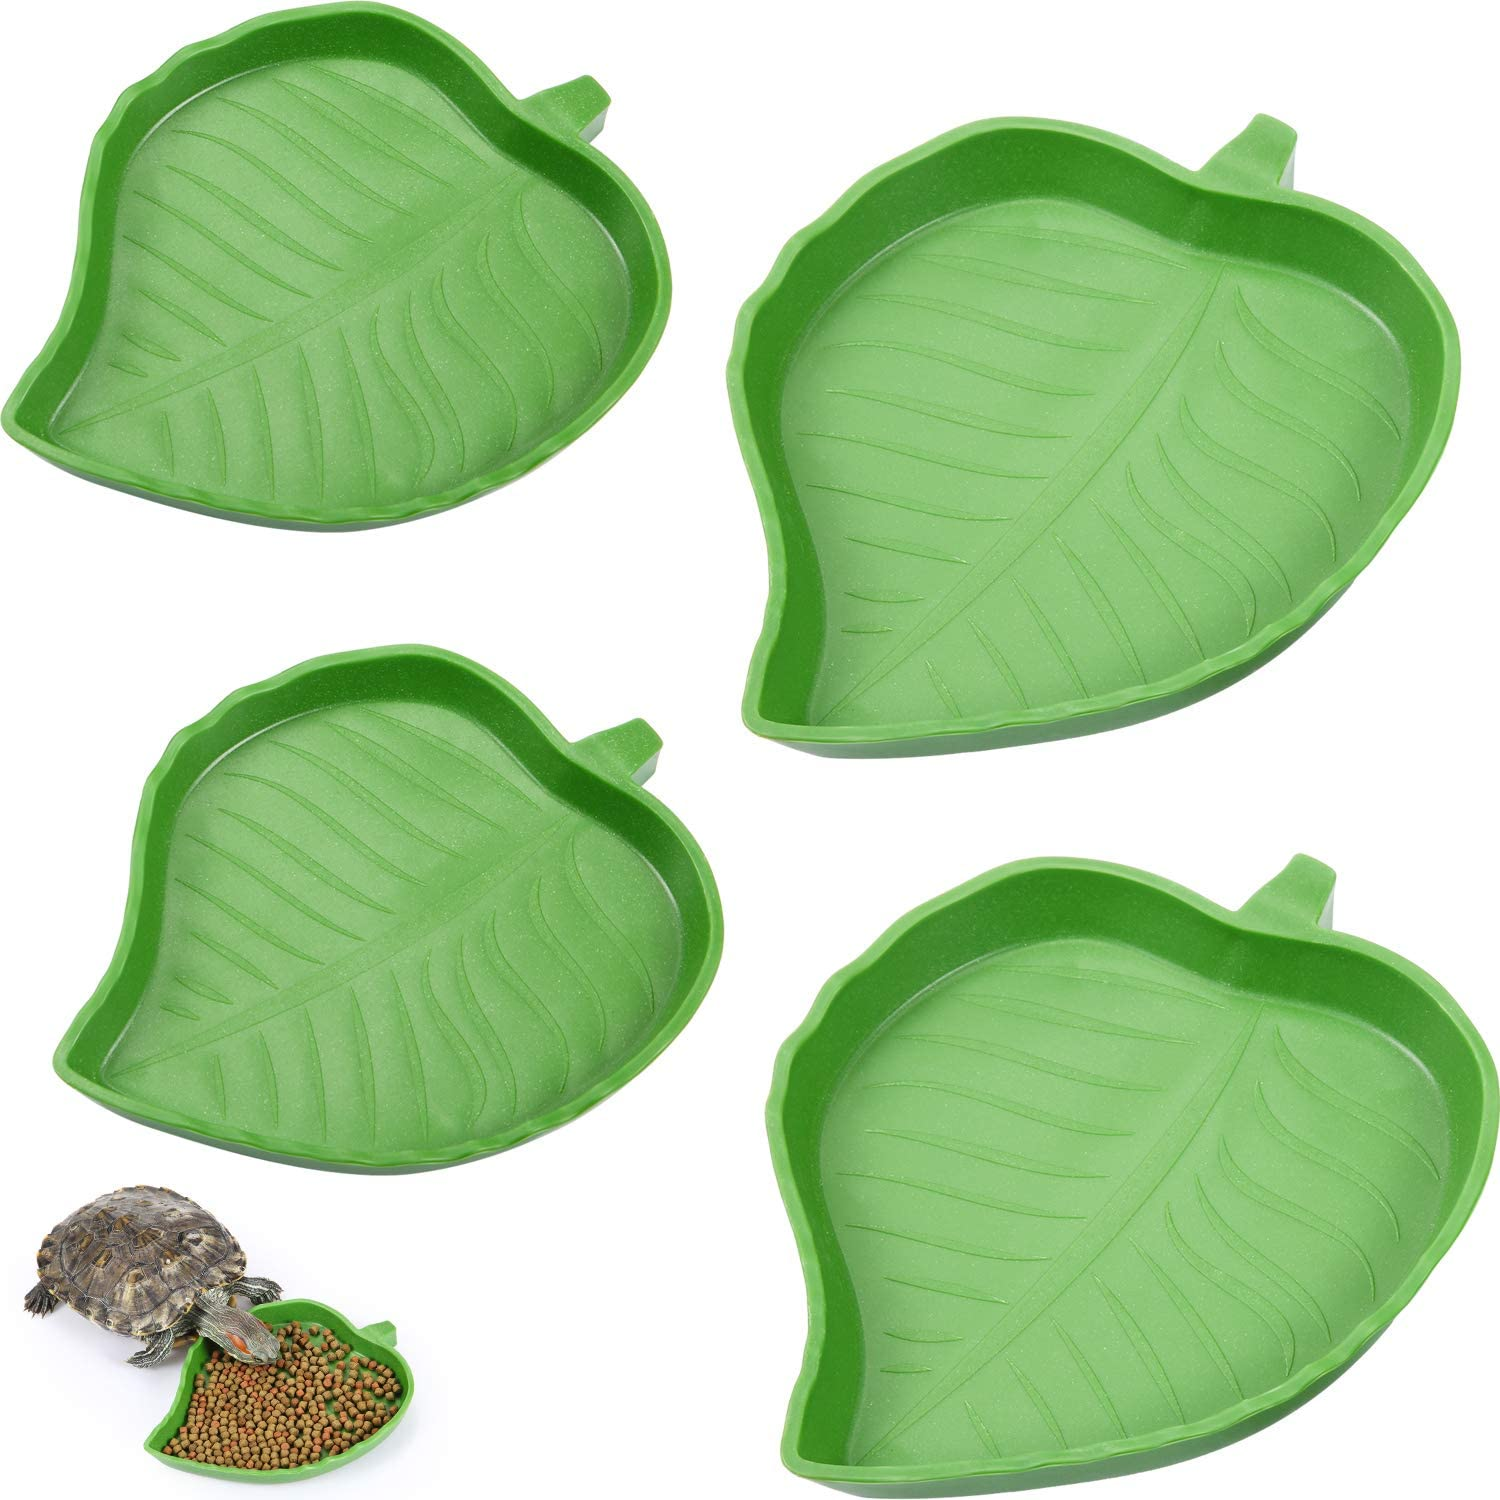 4 Pieces Leaf Reptile Food Water Bowl Plate Dish for Tortoise Corn Snake Crawl Pet Drinking and Eating, 2 Sizes